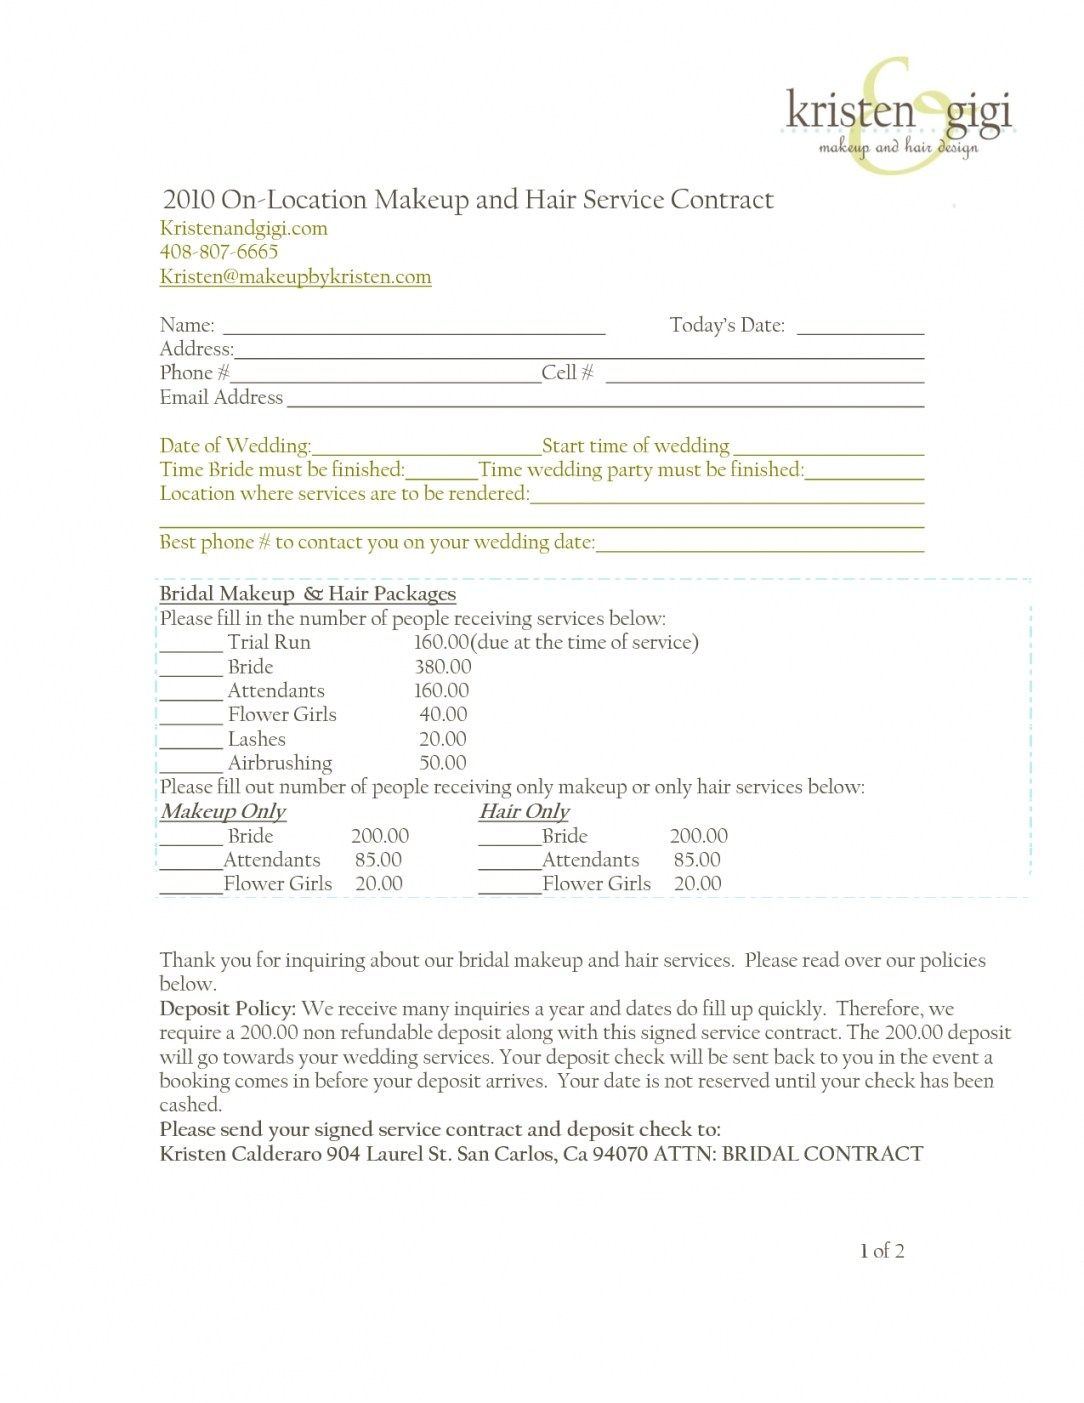 wedding hair and makeup contract template | hairstyles ideas